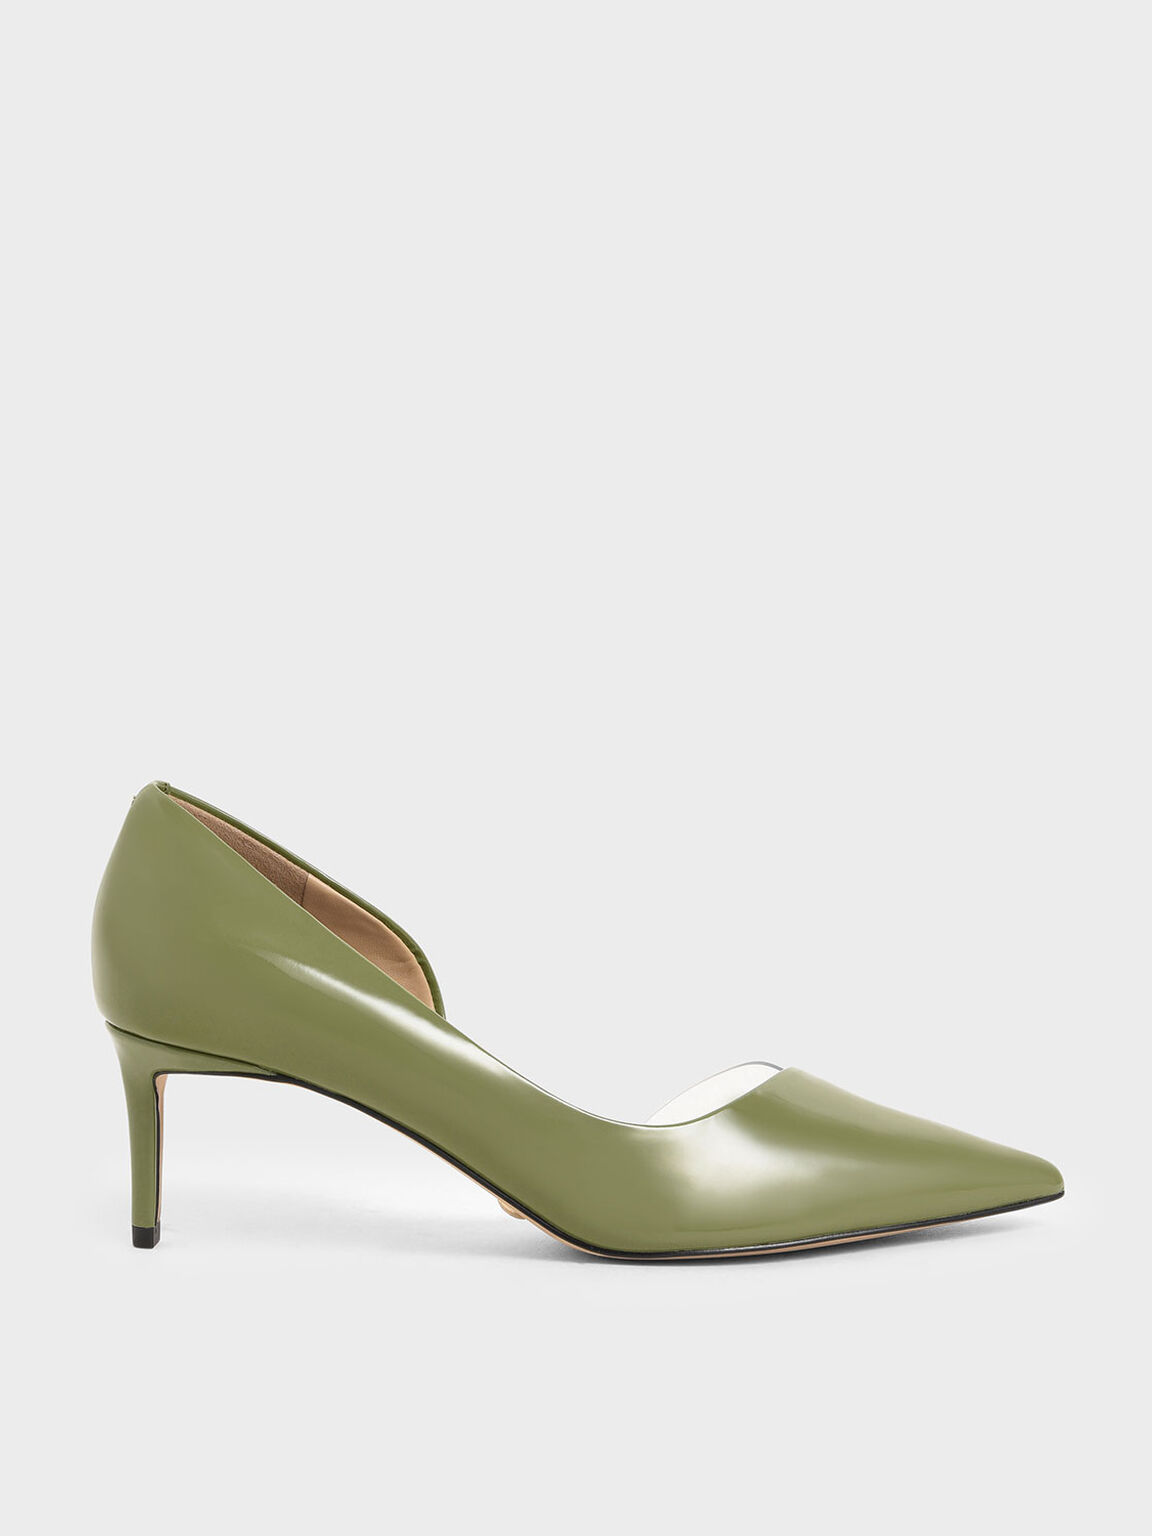 Patent Leather D'Orsay Pumps, Green, hi-res